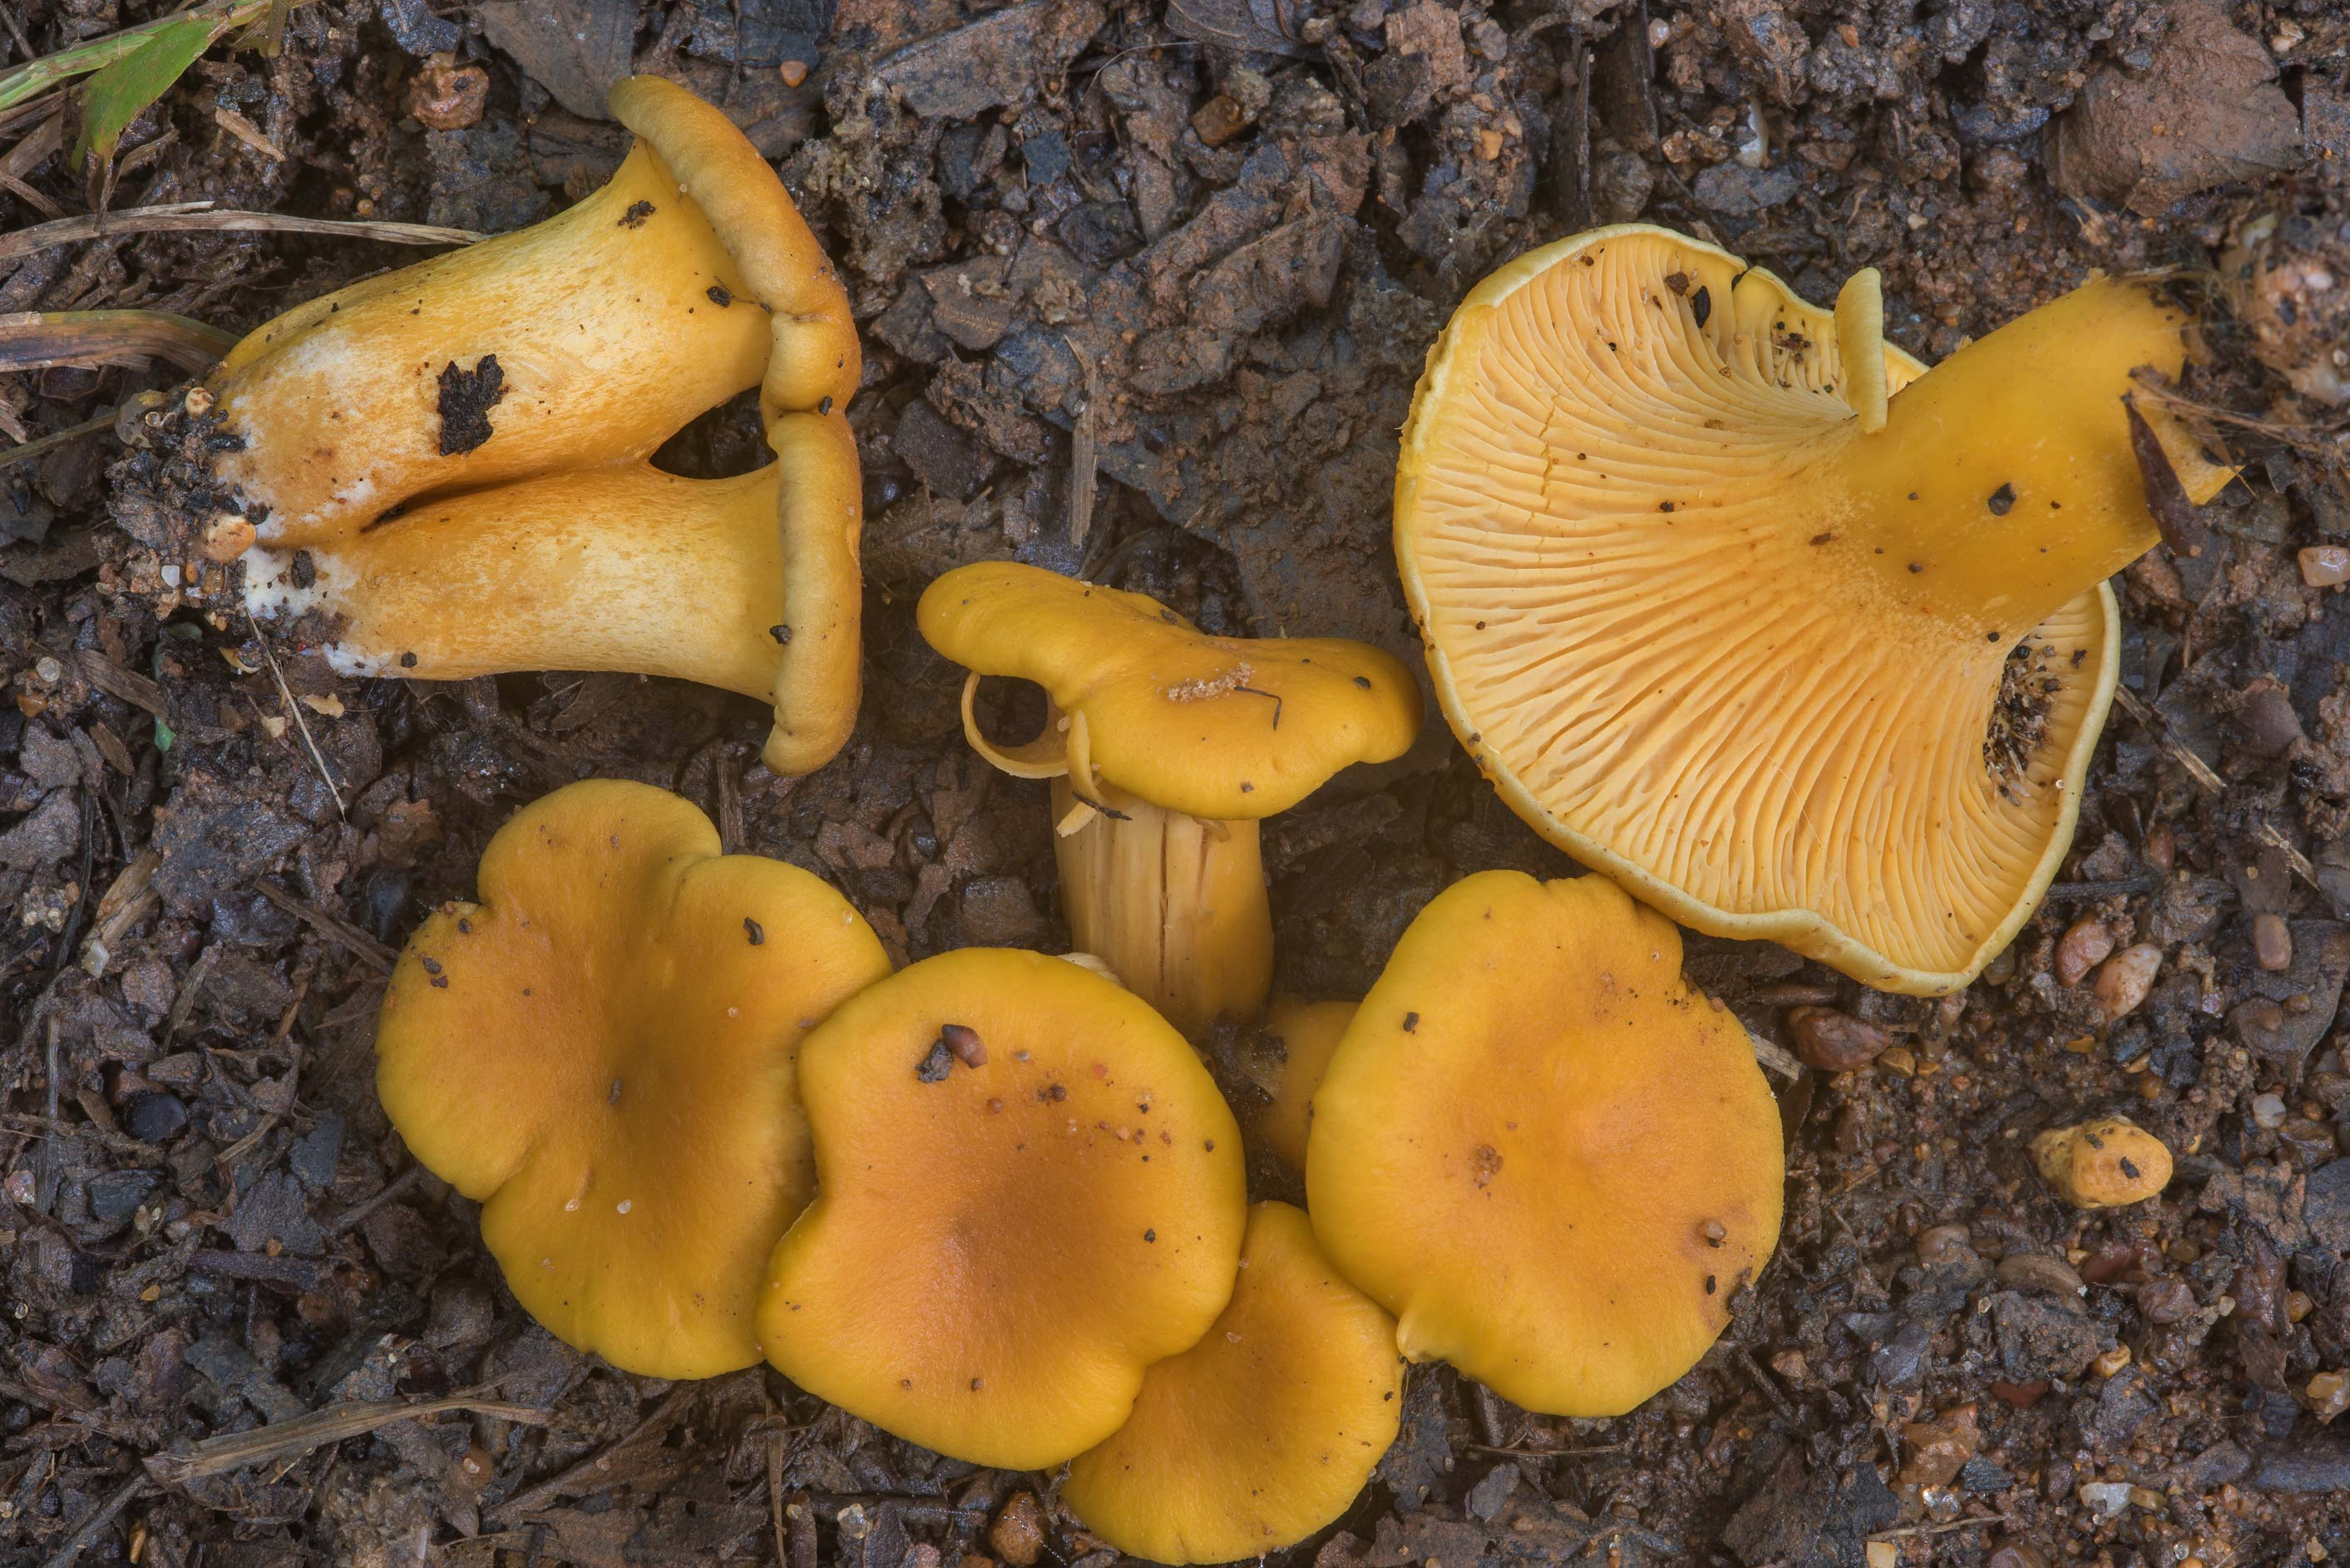 Young chanterelle mushrooms (Cantharellus...Creek Park. College Station, Texas